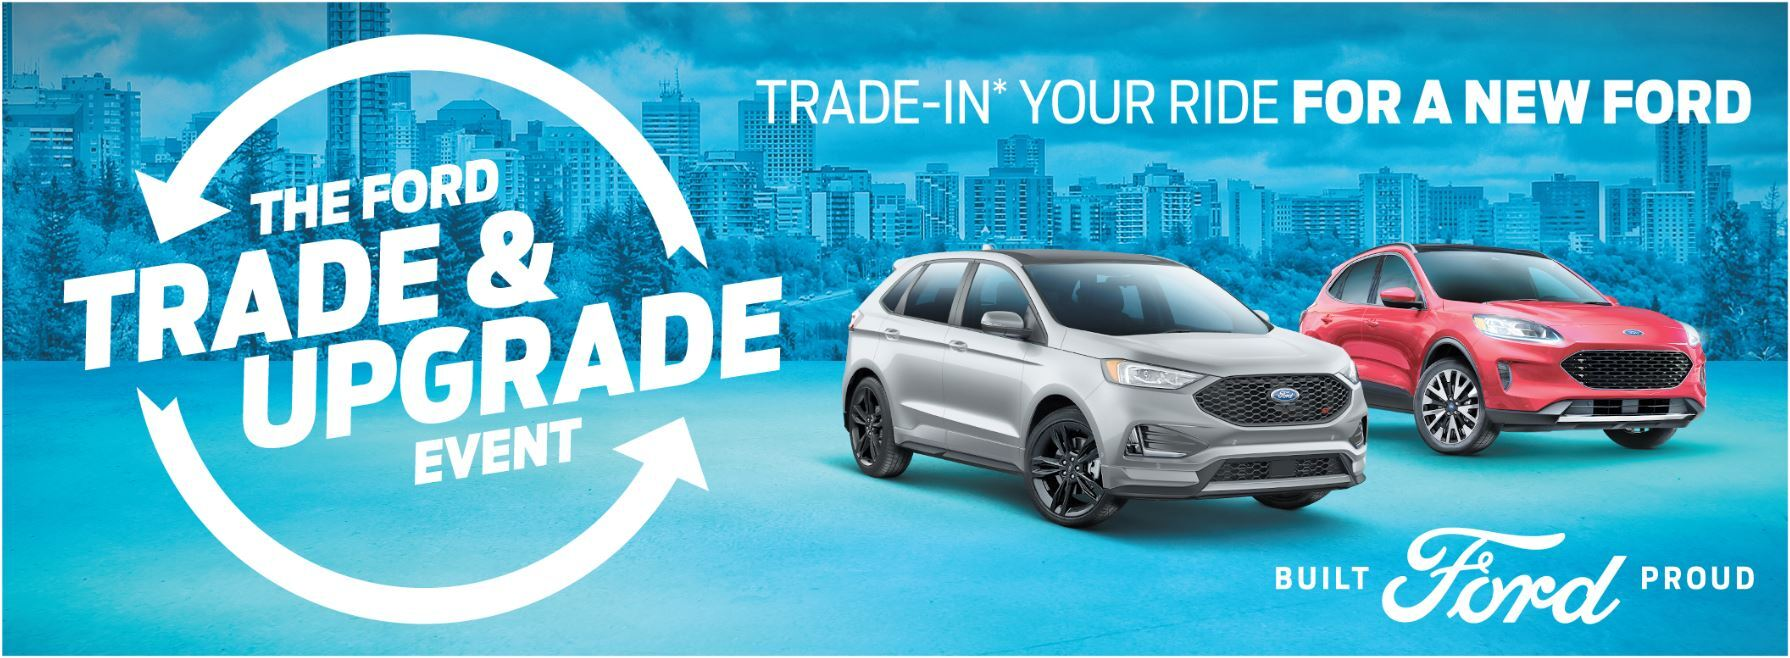 Trade & Upgrade Event SUV